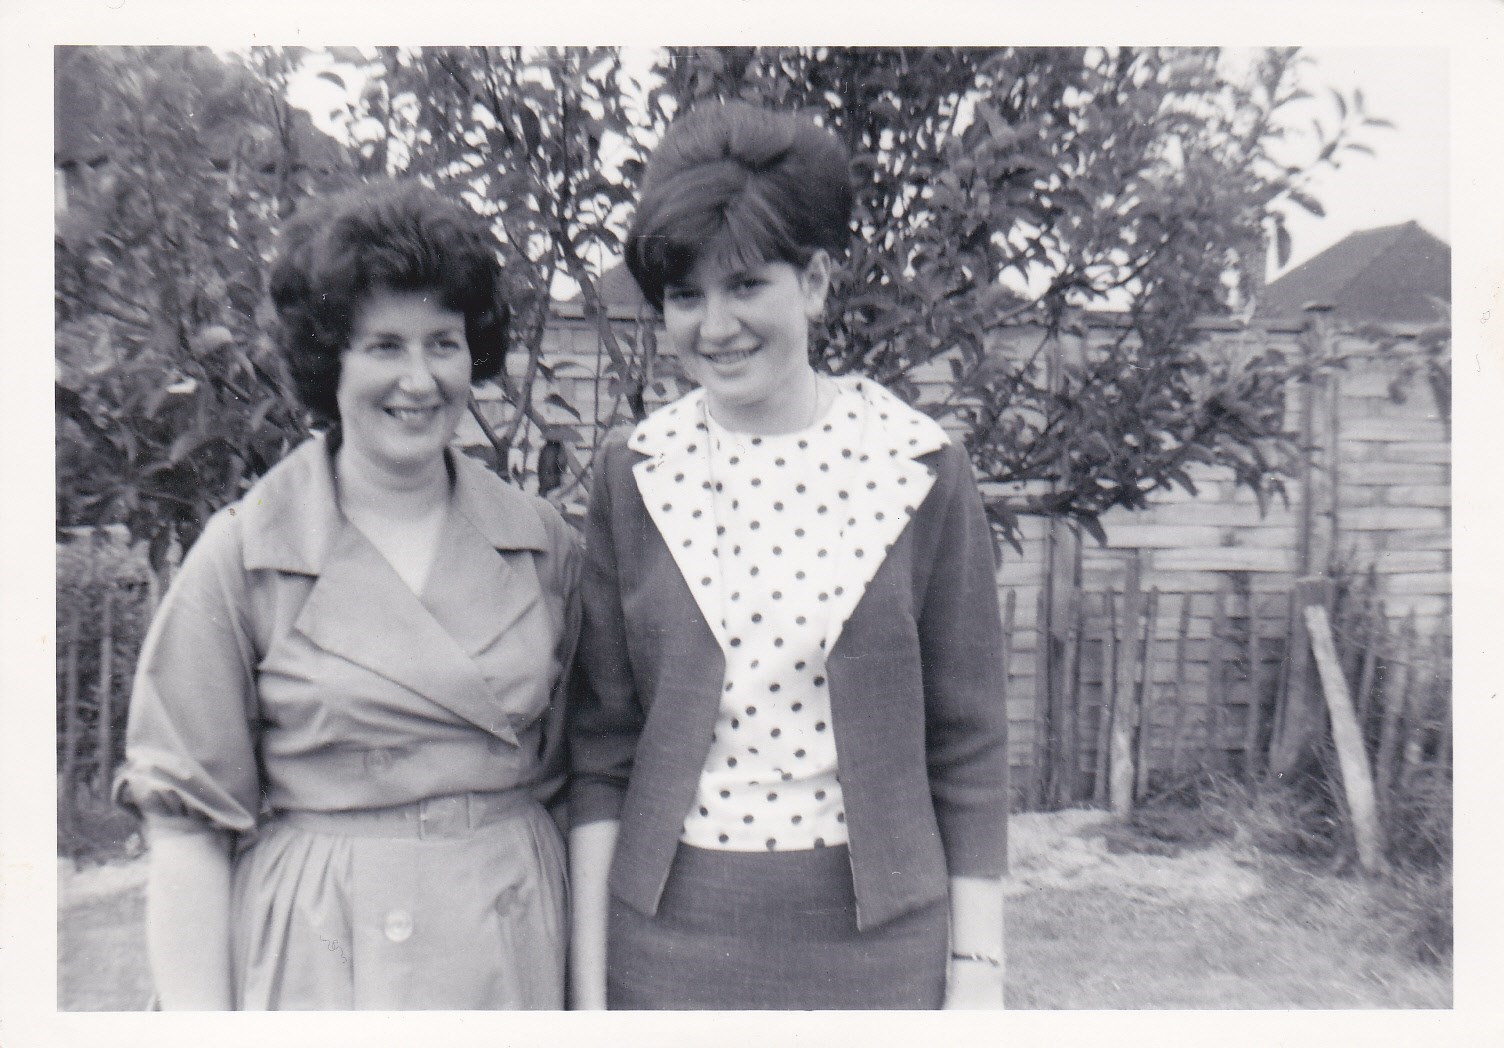 Eileen and Pam, the two sisters on Phil's christening day